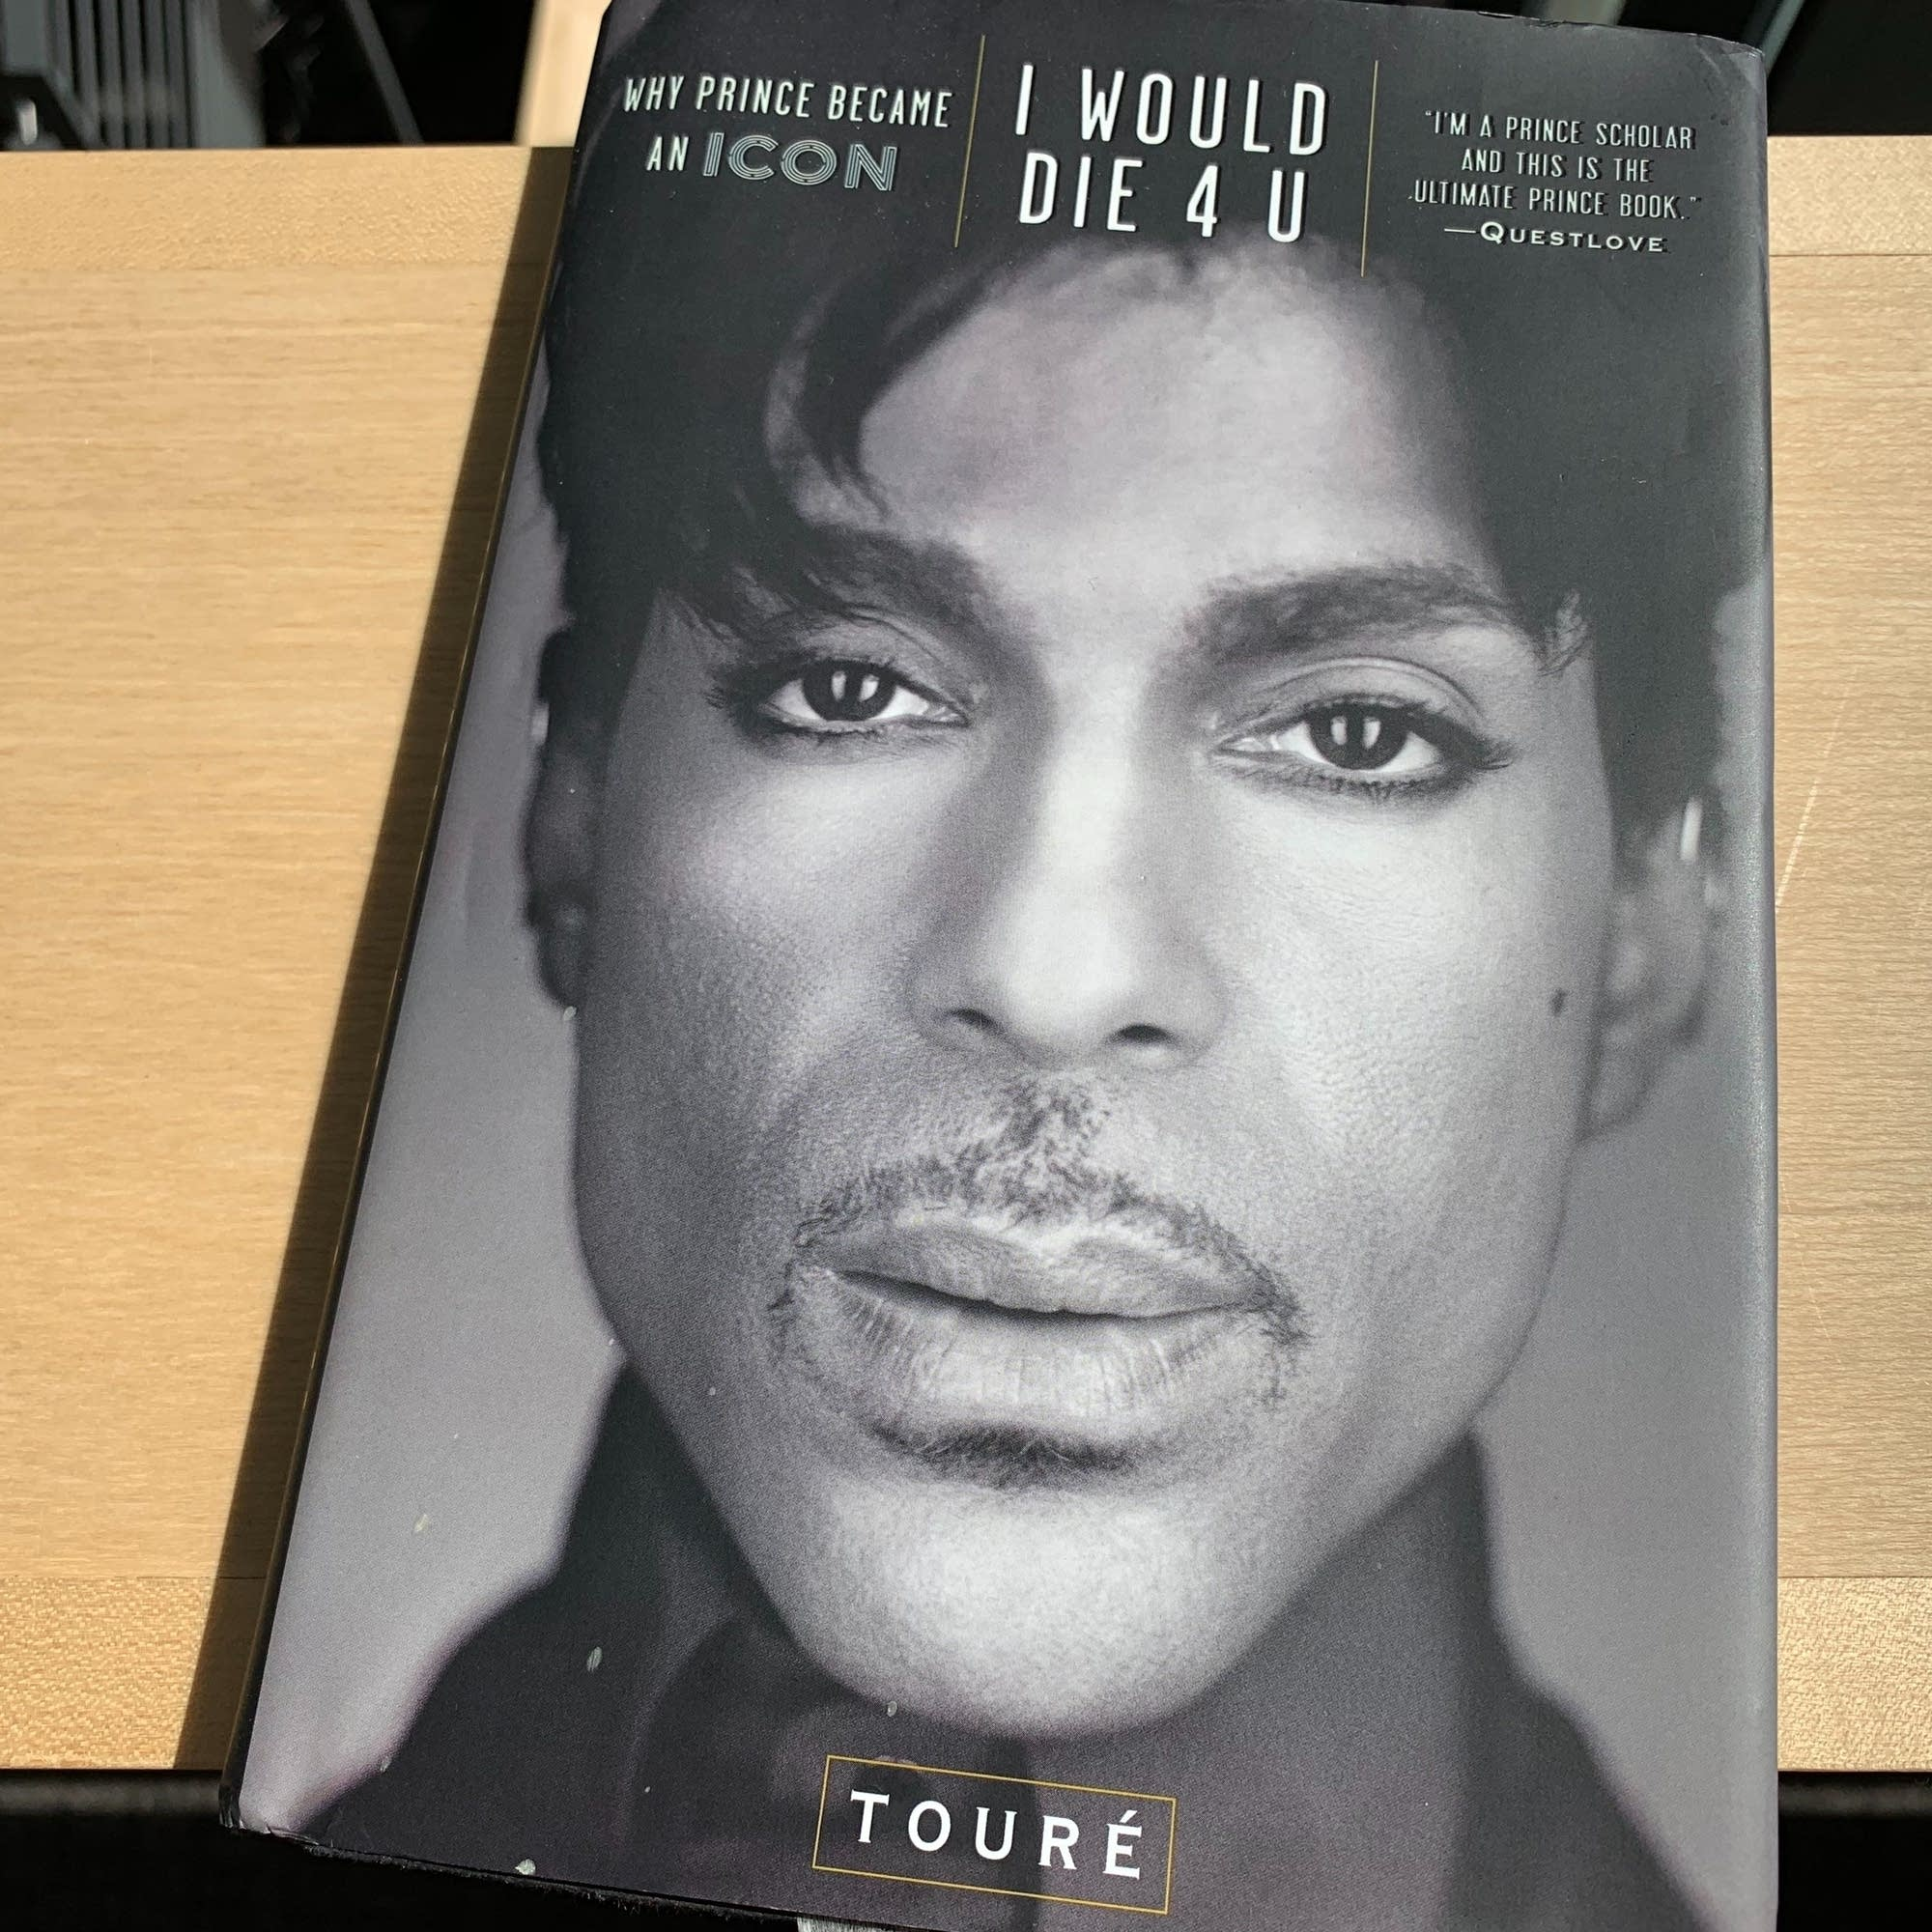 Toure's book 'I Would Die 4 U.'